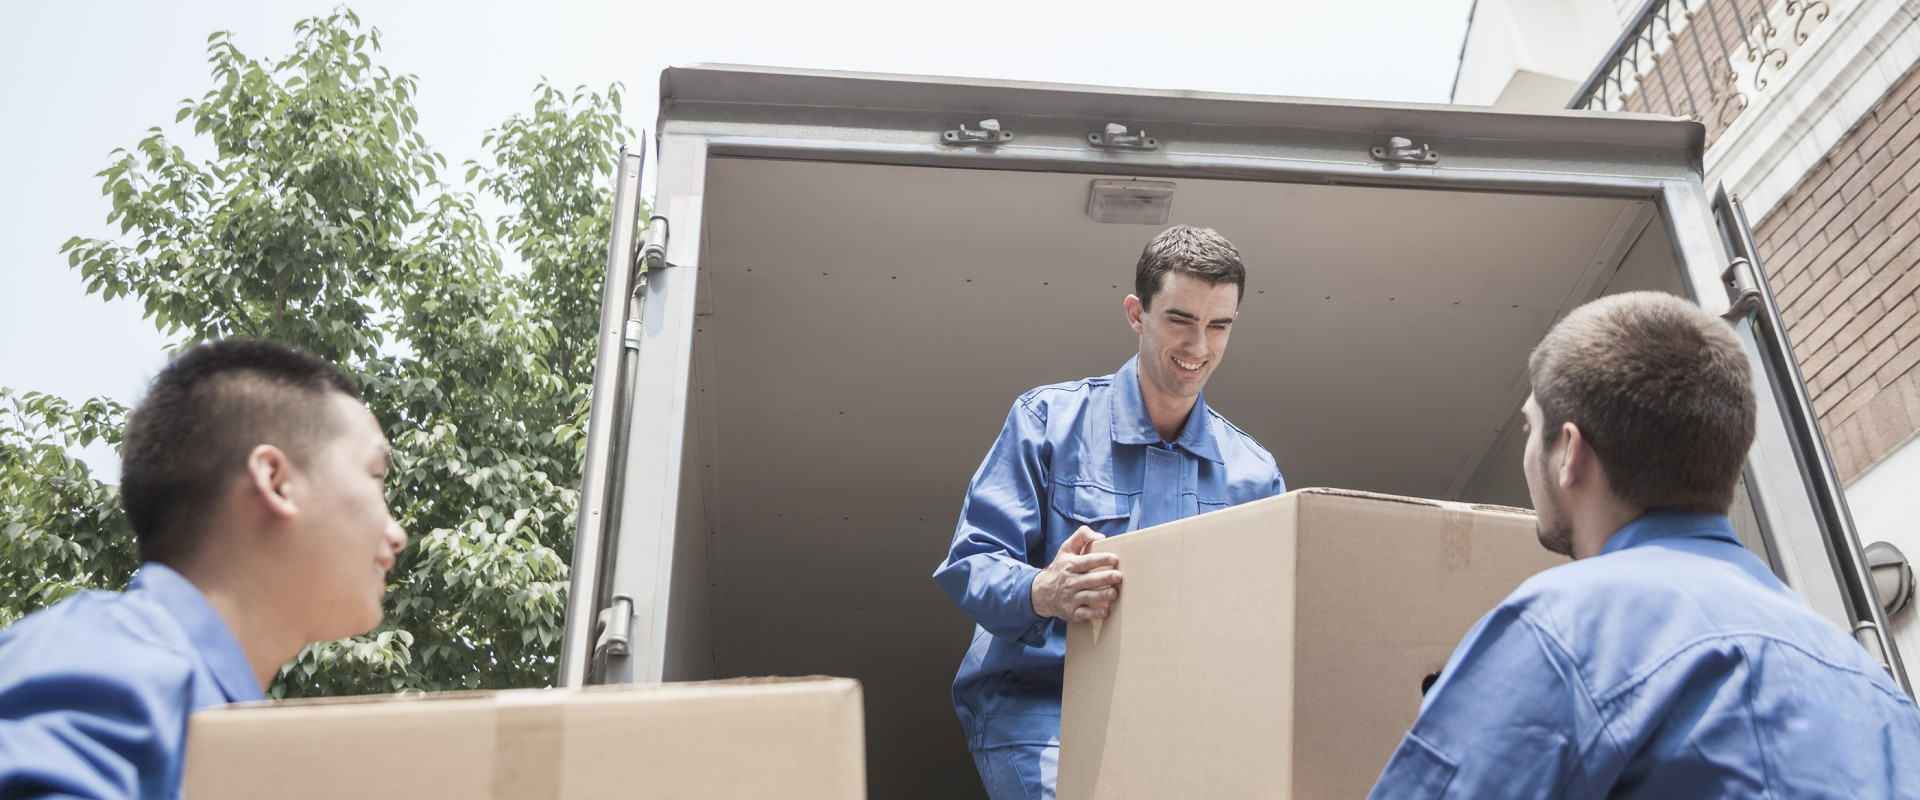 bigstock-Movers-unloading-a-moving-van-52631176-1920x800